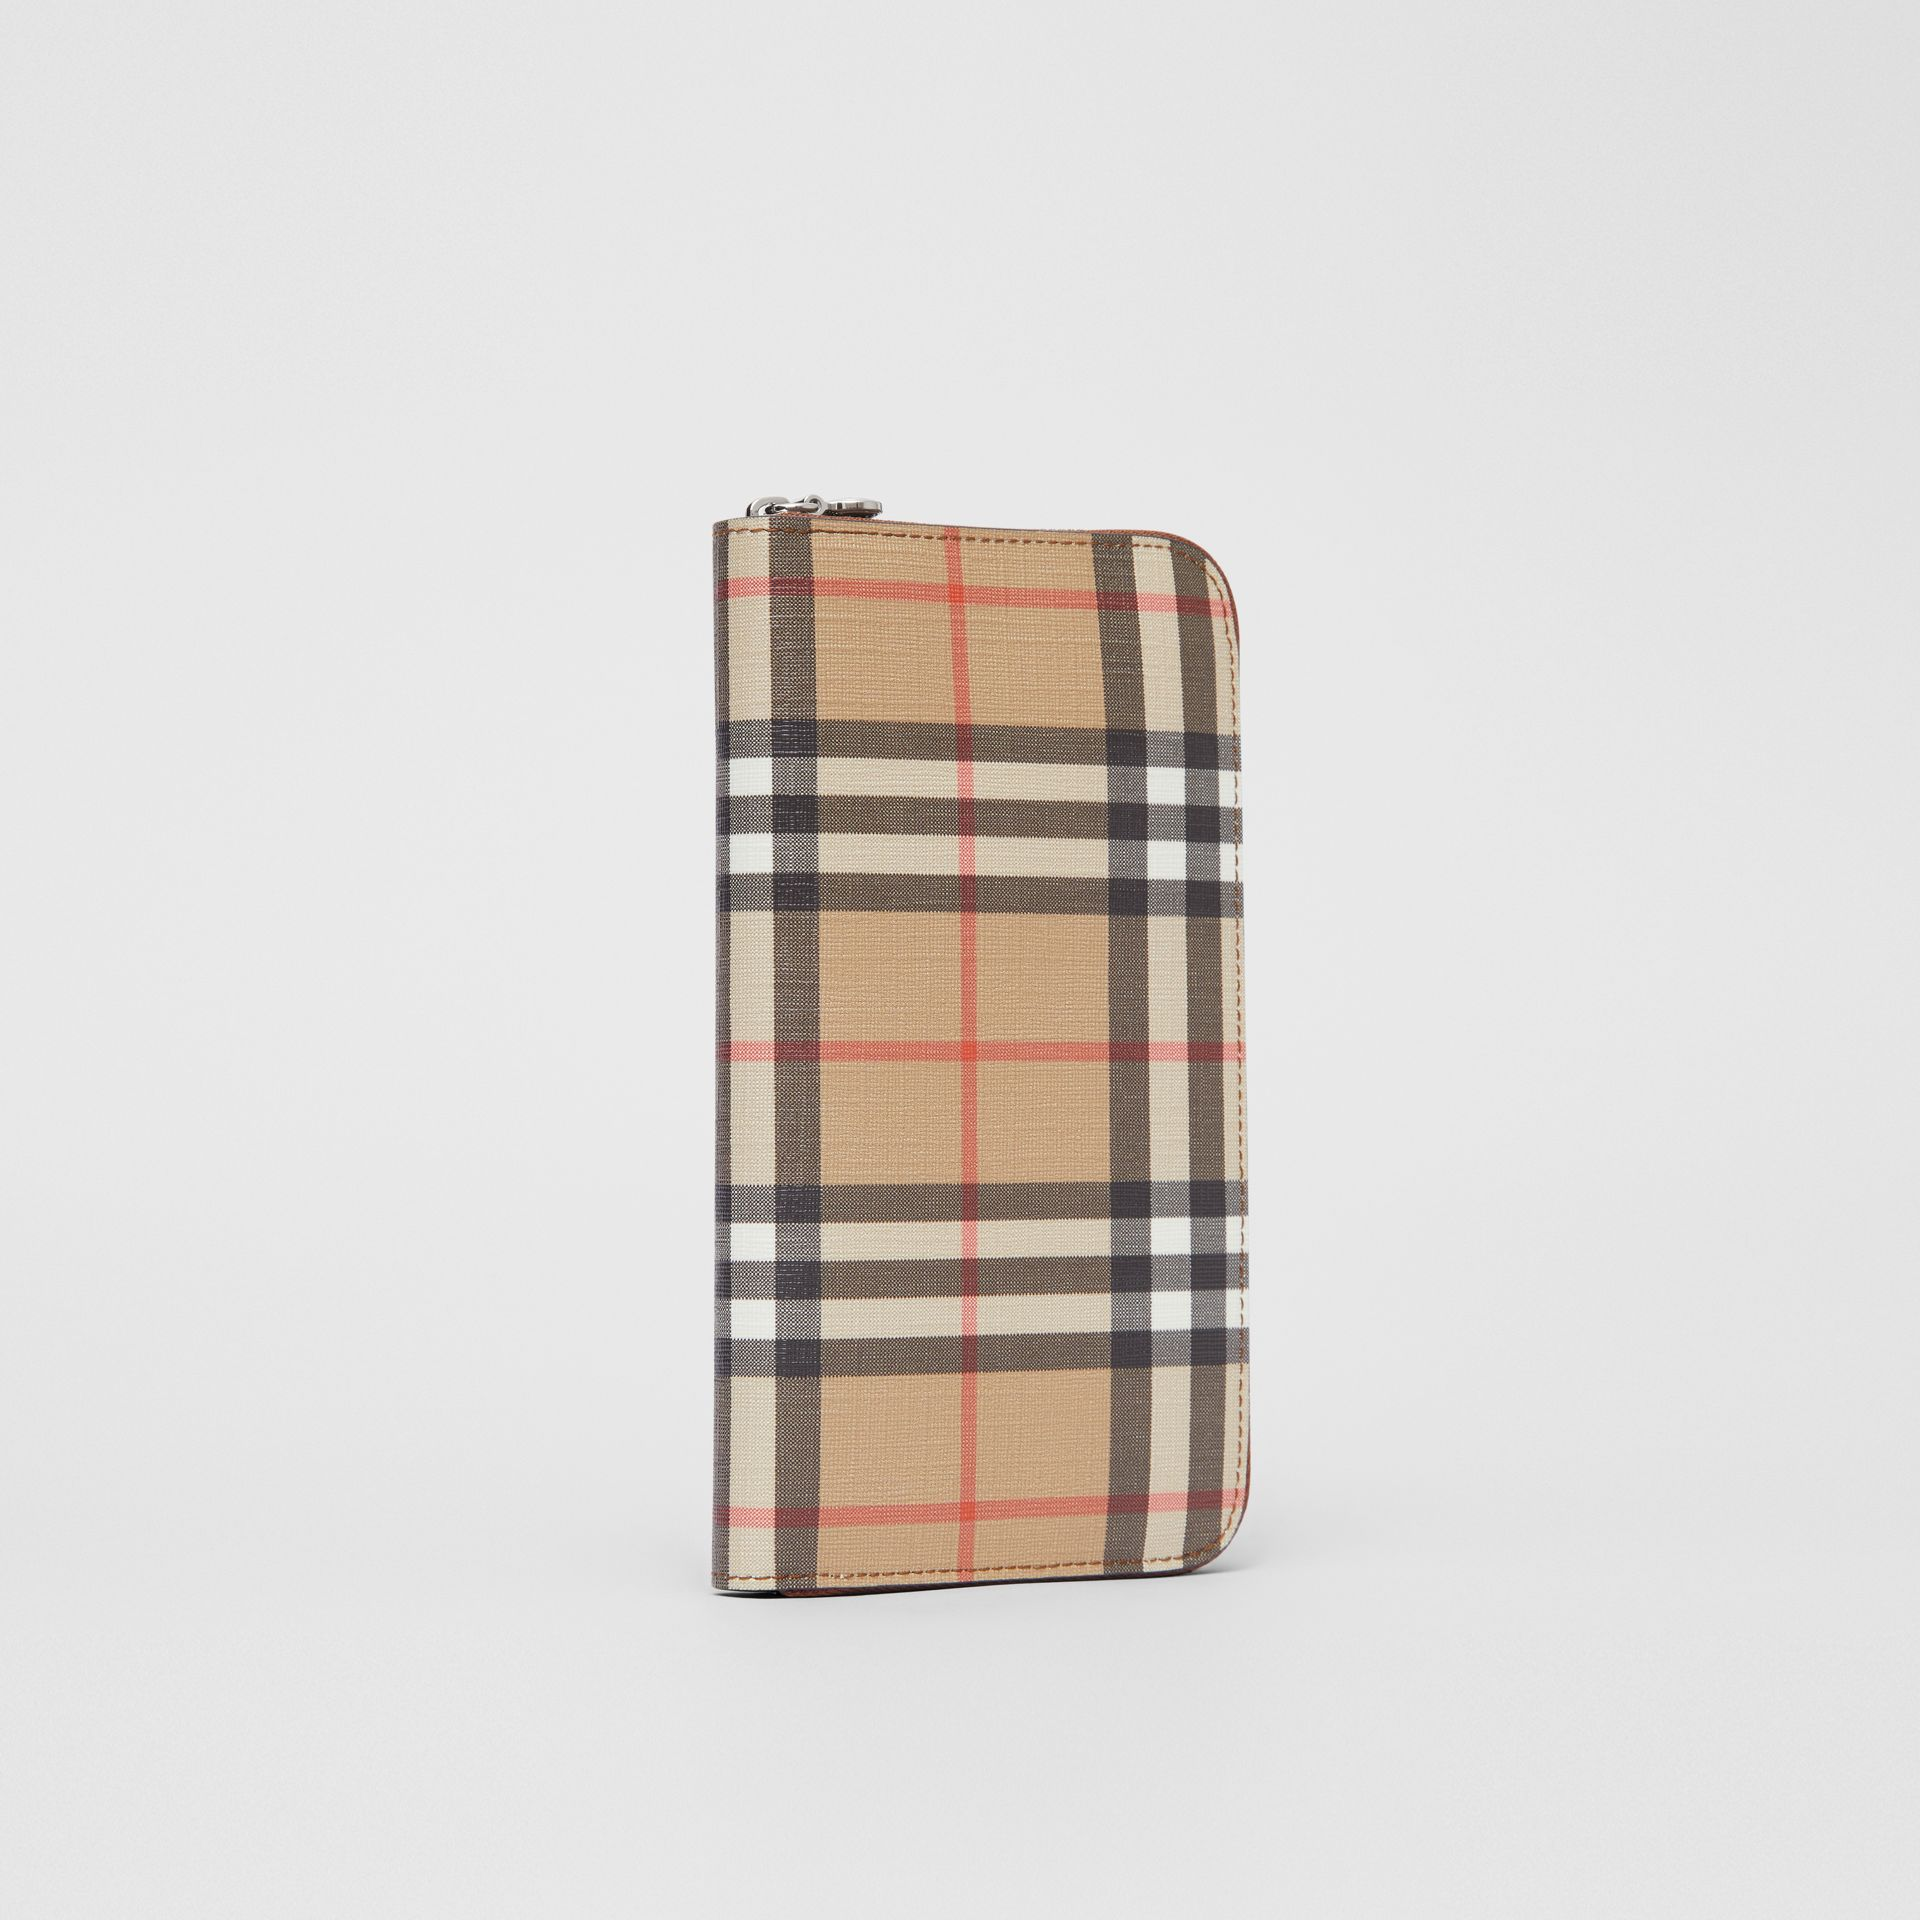 Vintage Check E-canvas Ziparound Wallet in Malt Brown - Women | Burberry Hong Kong S.A.R - gallery image 3